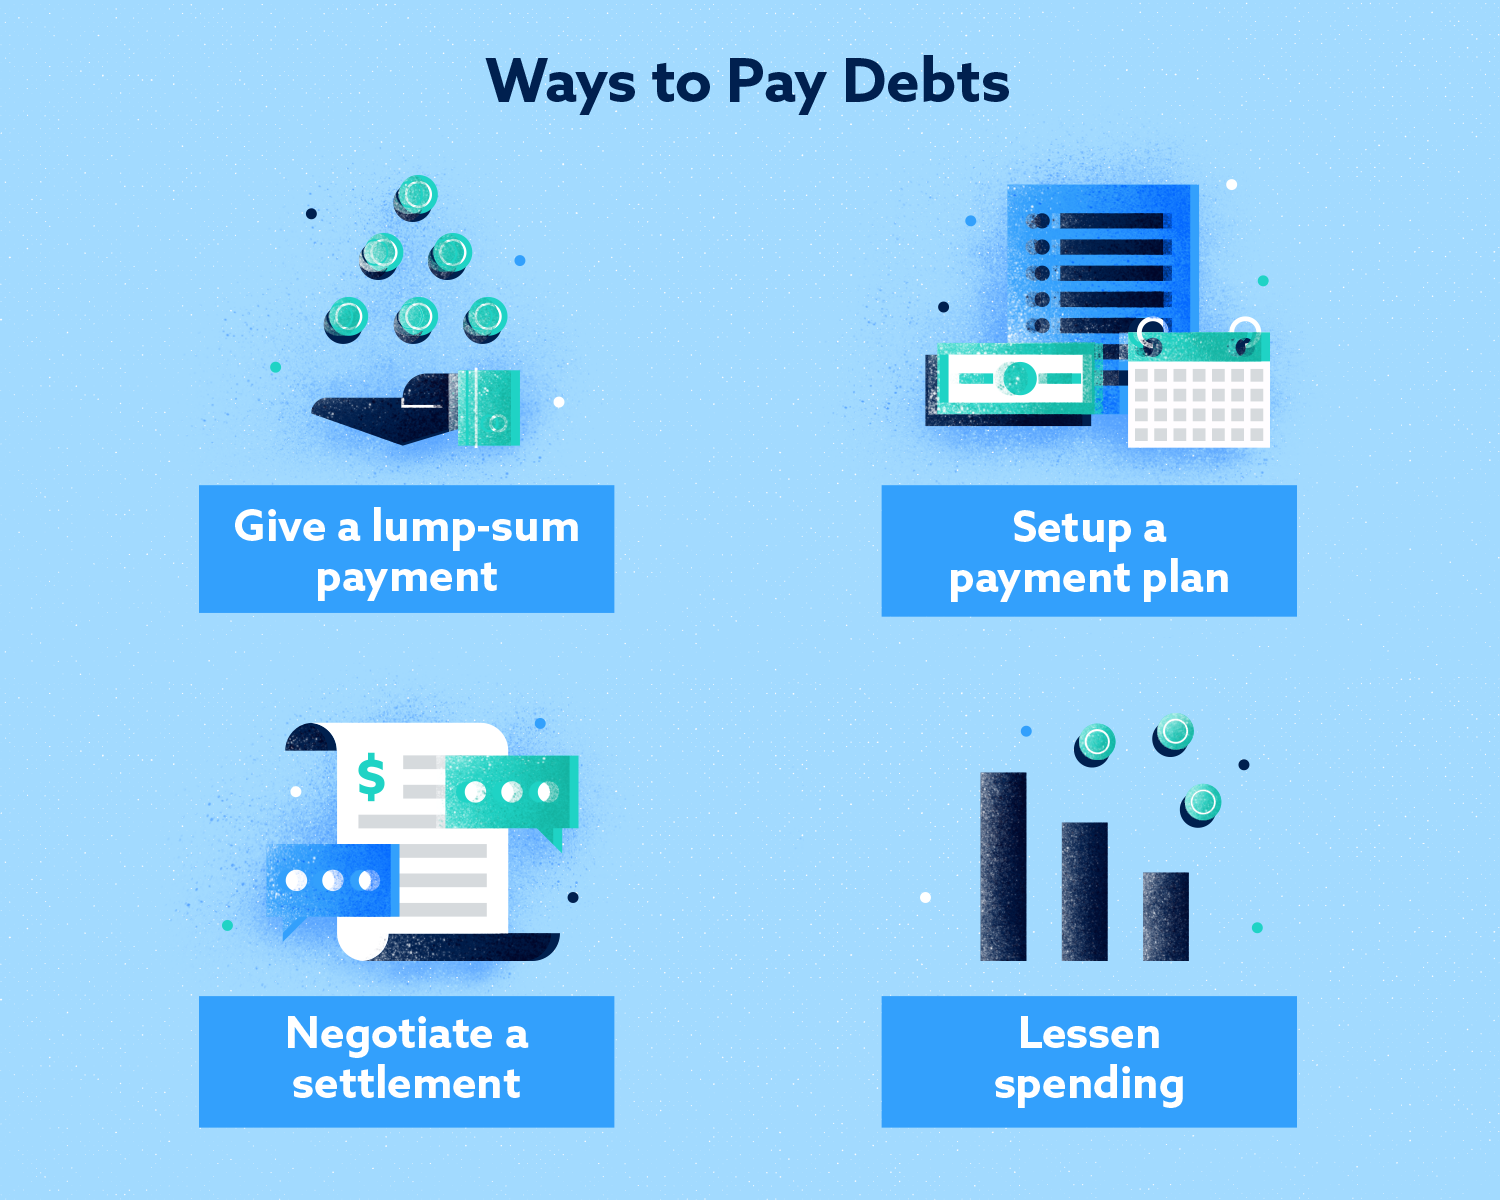 Ways to Pay Debts Image